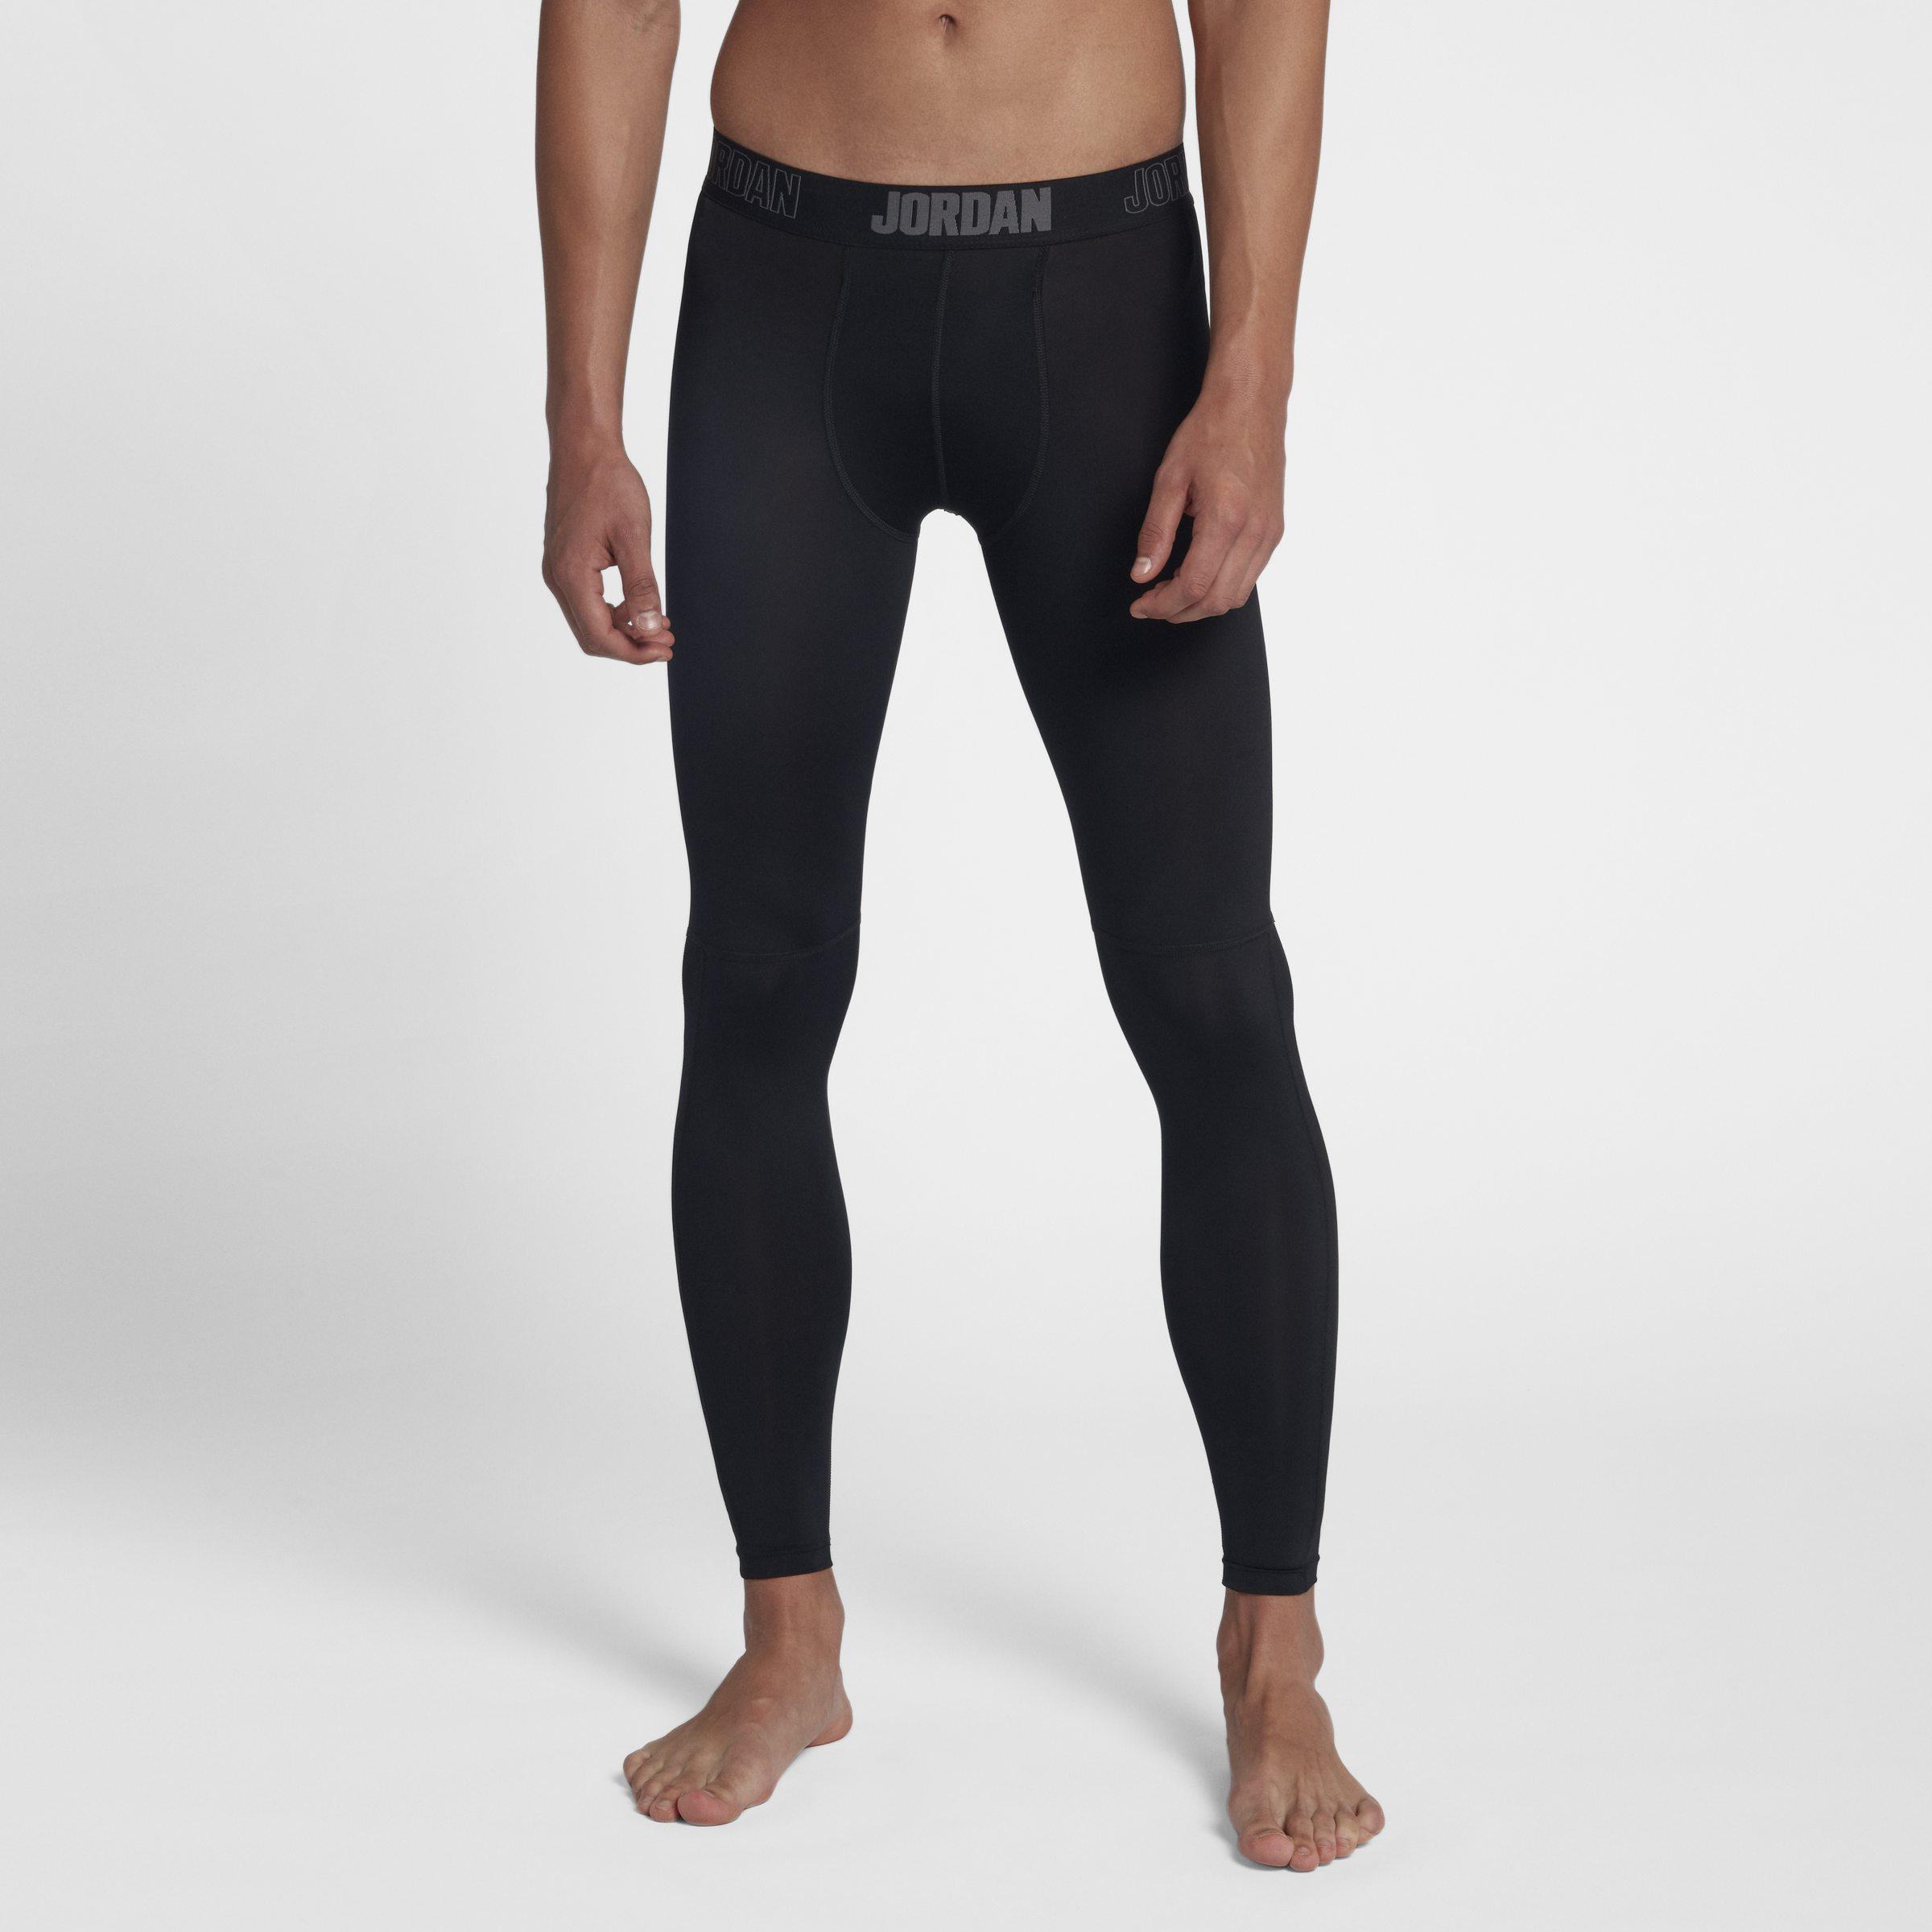 35a3f1cd560f7 Nike Jordan Dri-fit 23 Alpha Training Tights in Black for Men - Save ...